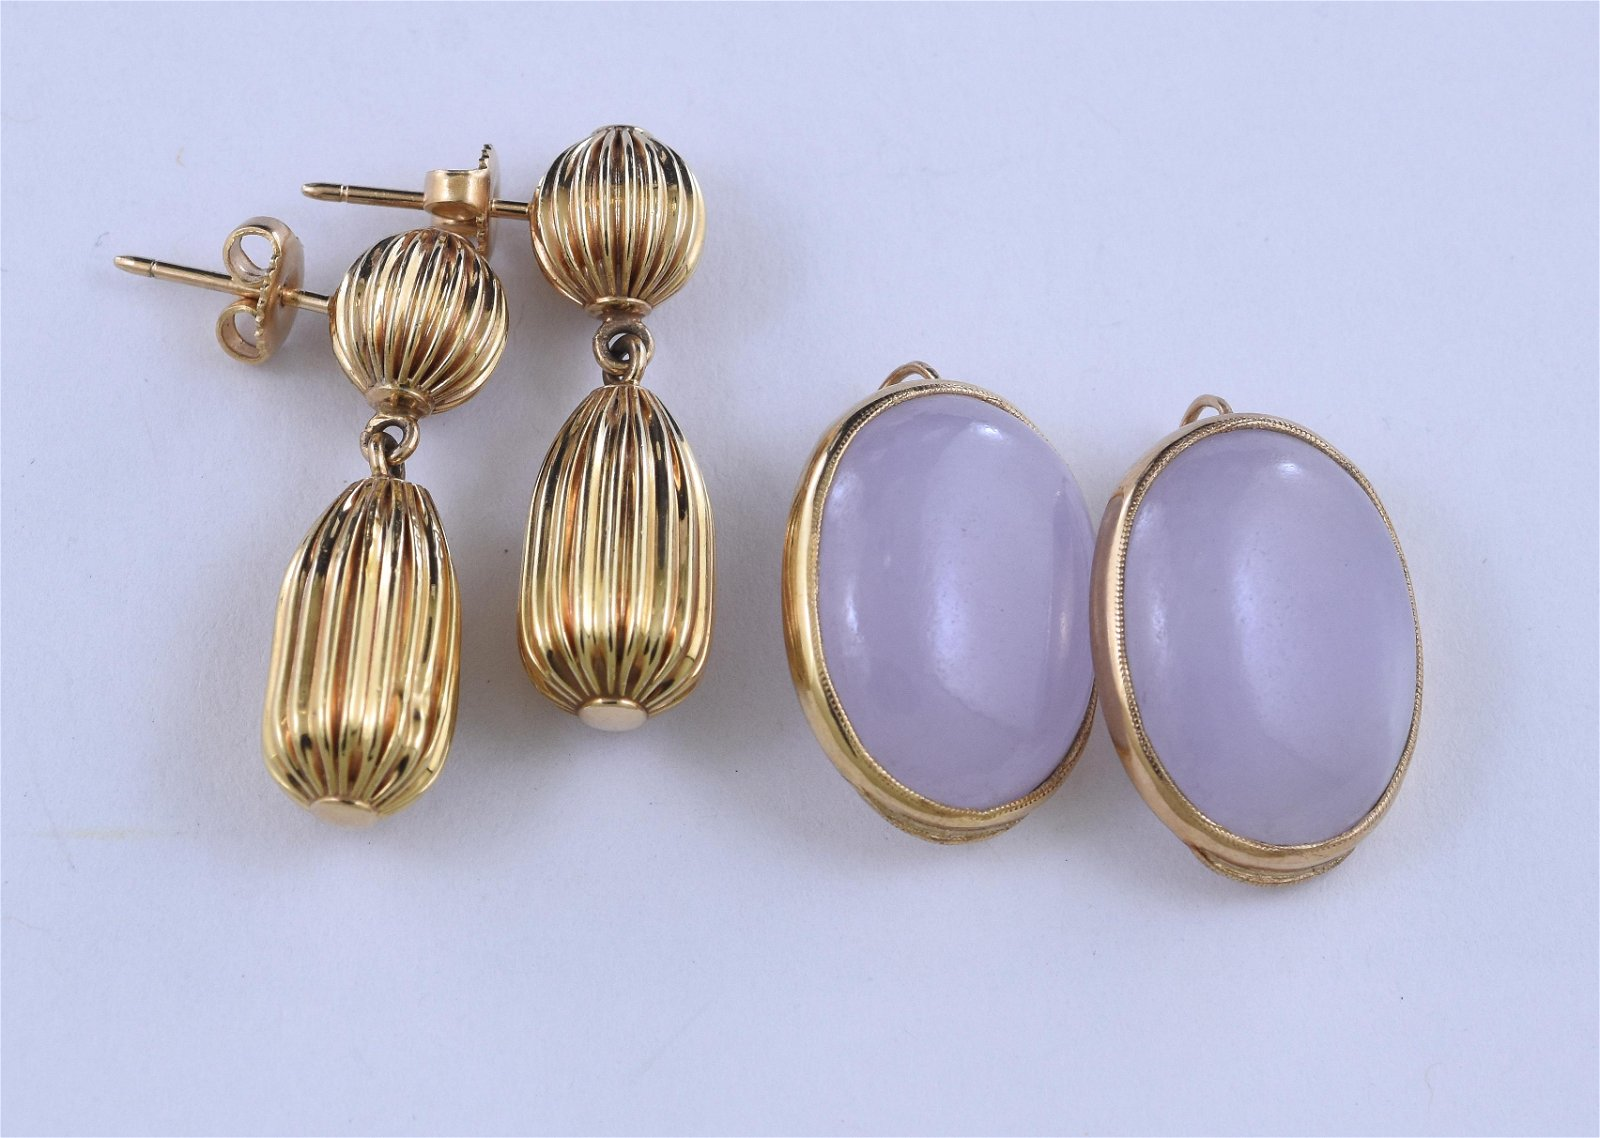 14K gold and lavender jade earrings with other pair